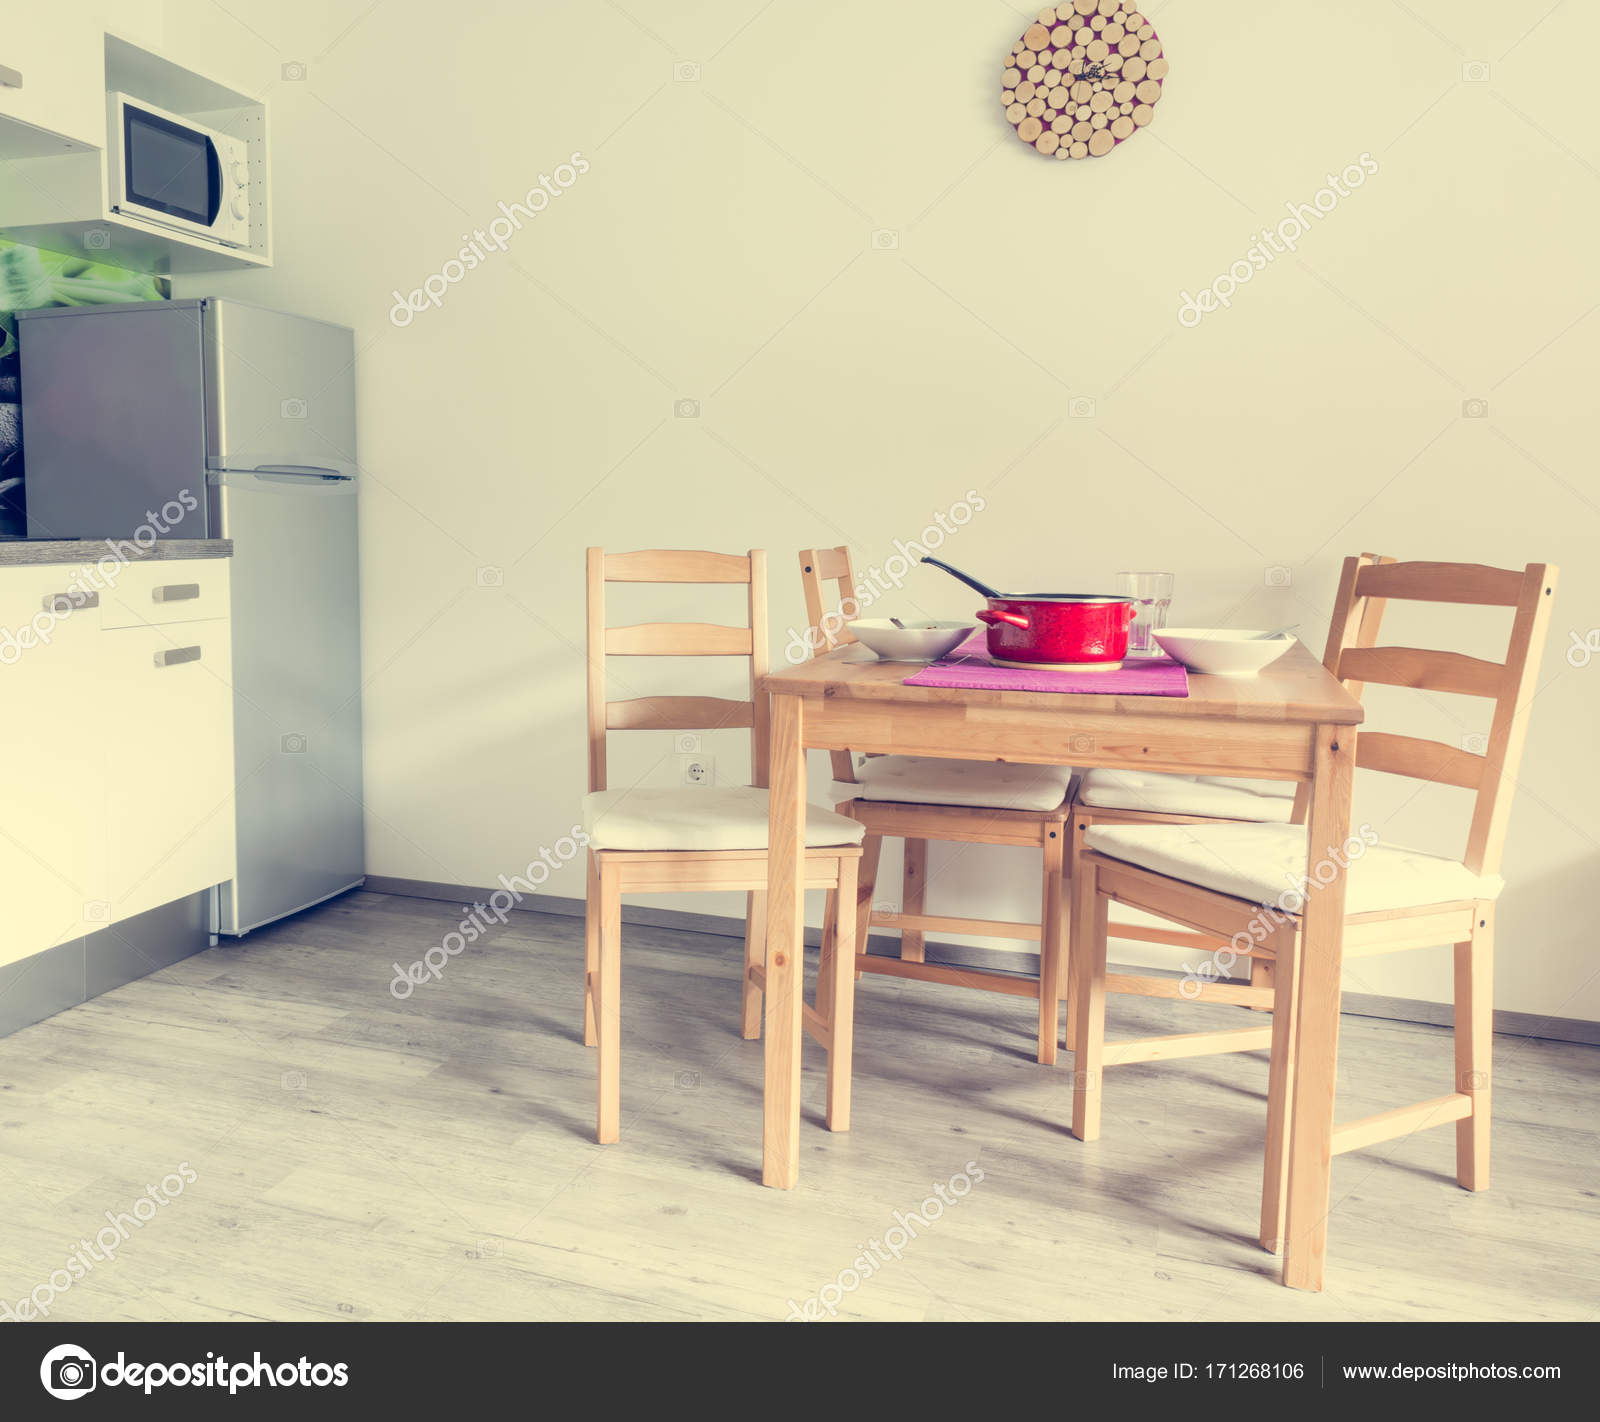 Modern and minimalistic kitchen set wooden table and chairs